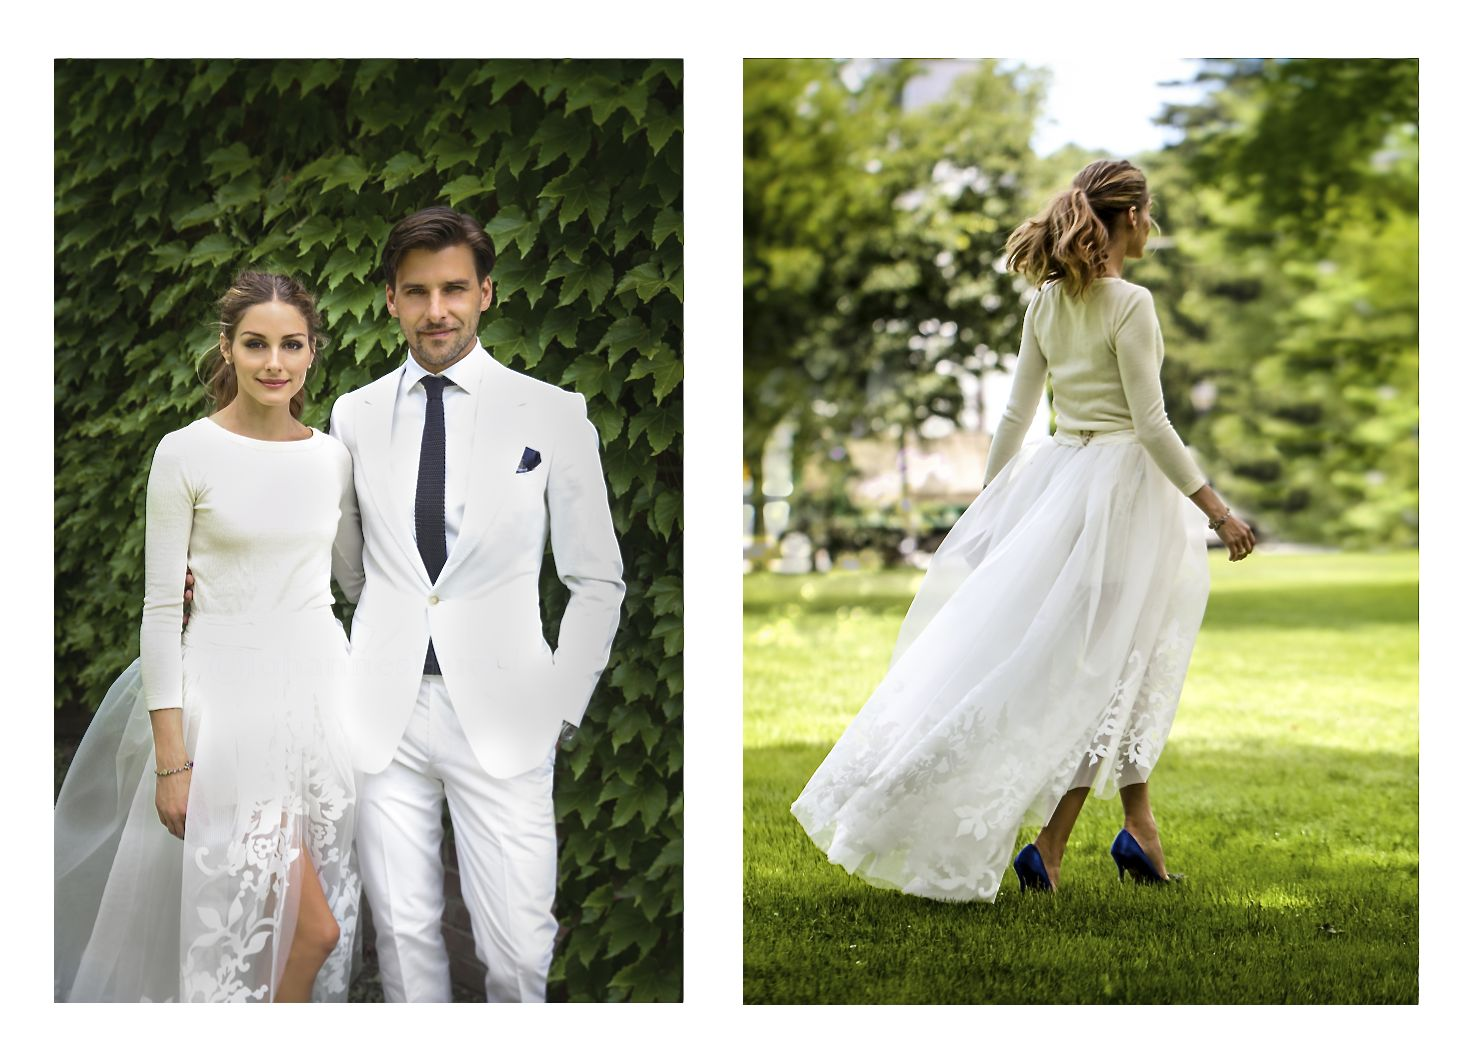 Olivia Palermo Marries Johannes Huebl 2017